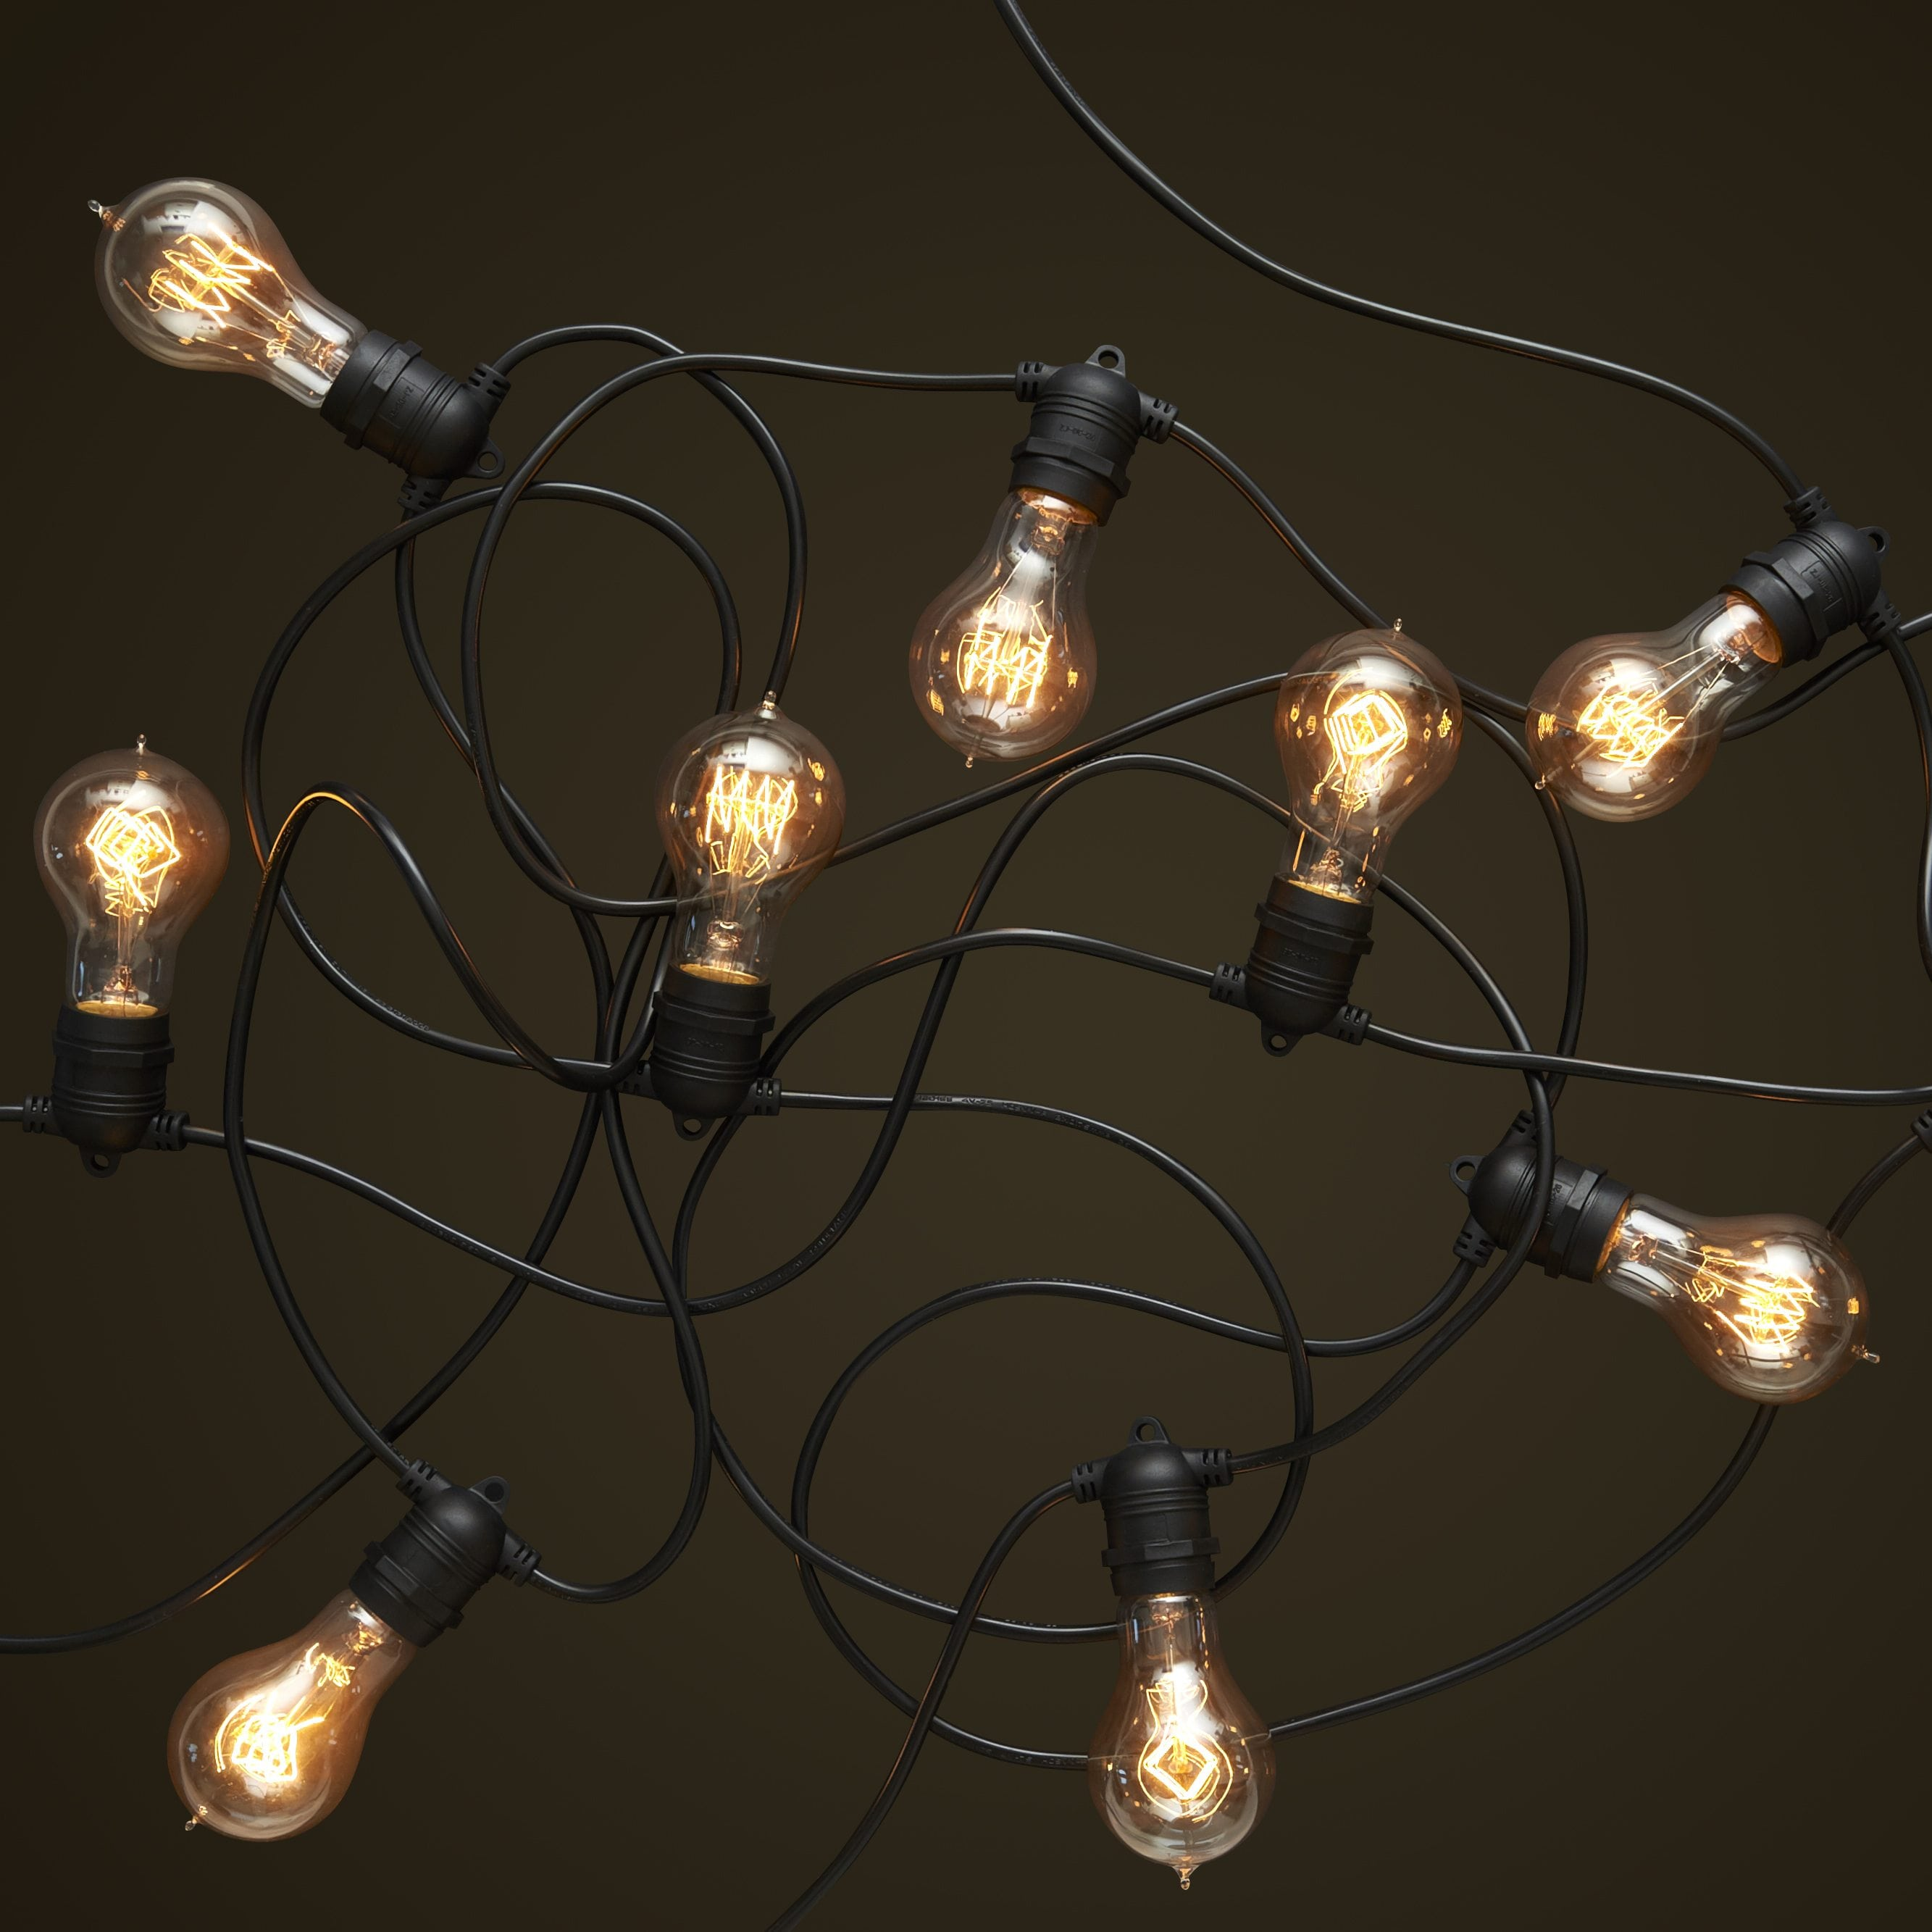 Black 20M Festoon String Light Choice of Decorative Festoon Globes